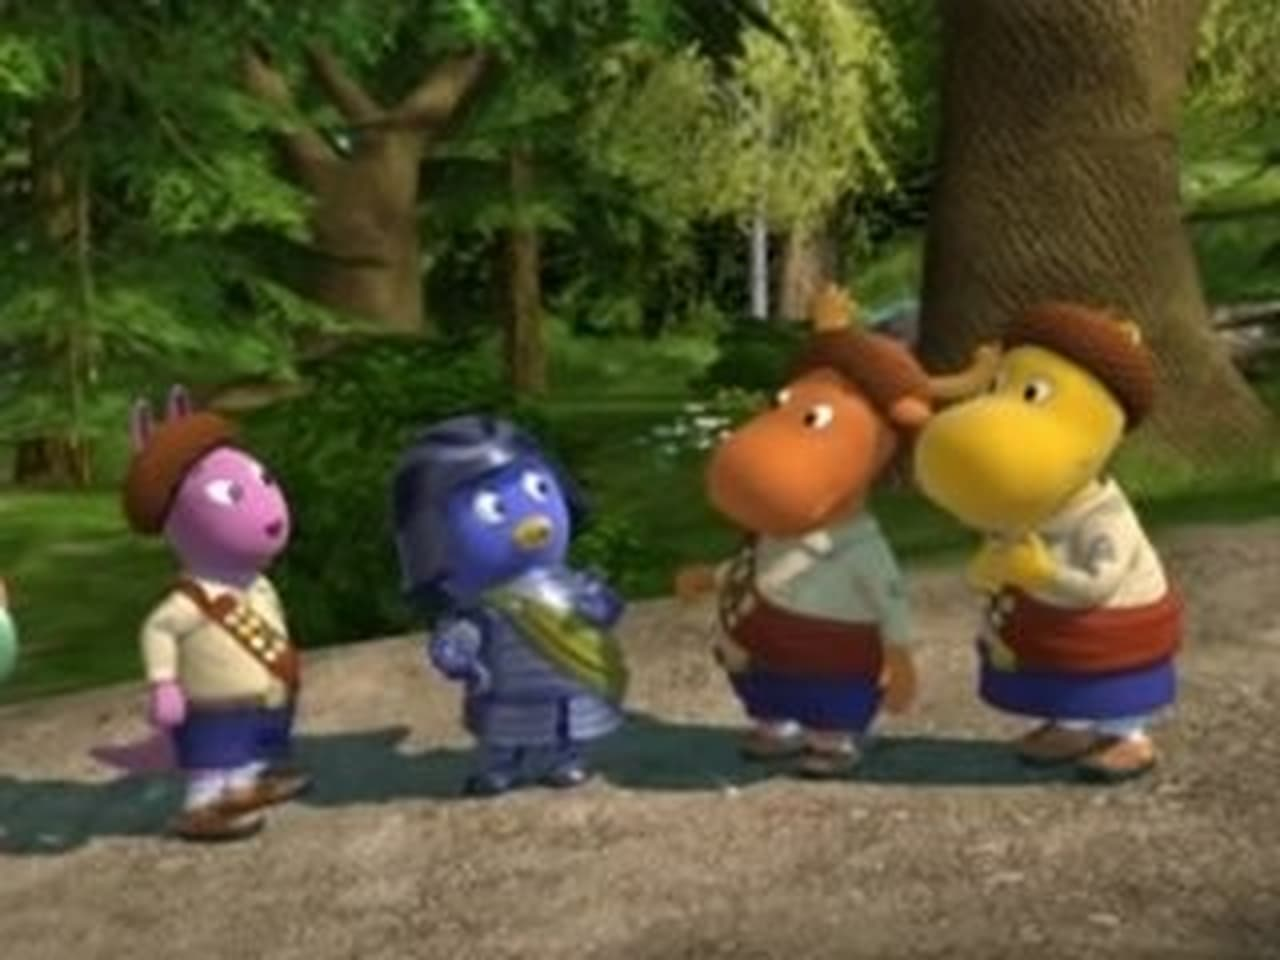 The Backyardigans Episode: Pablor and the Acorns